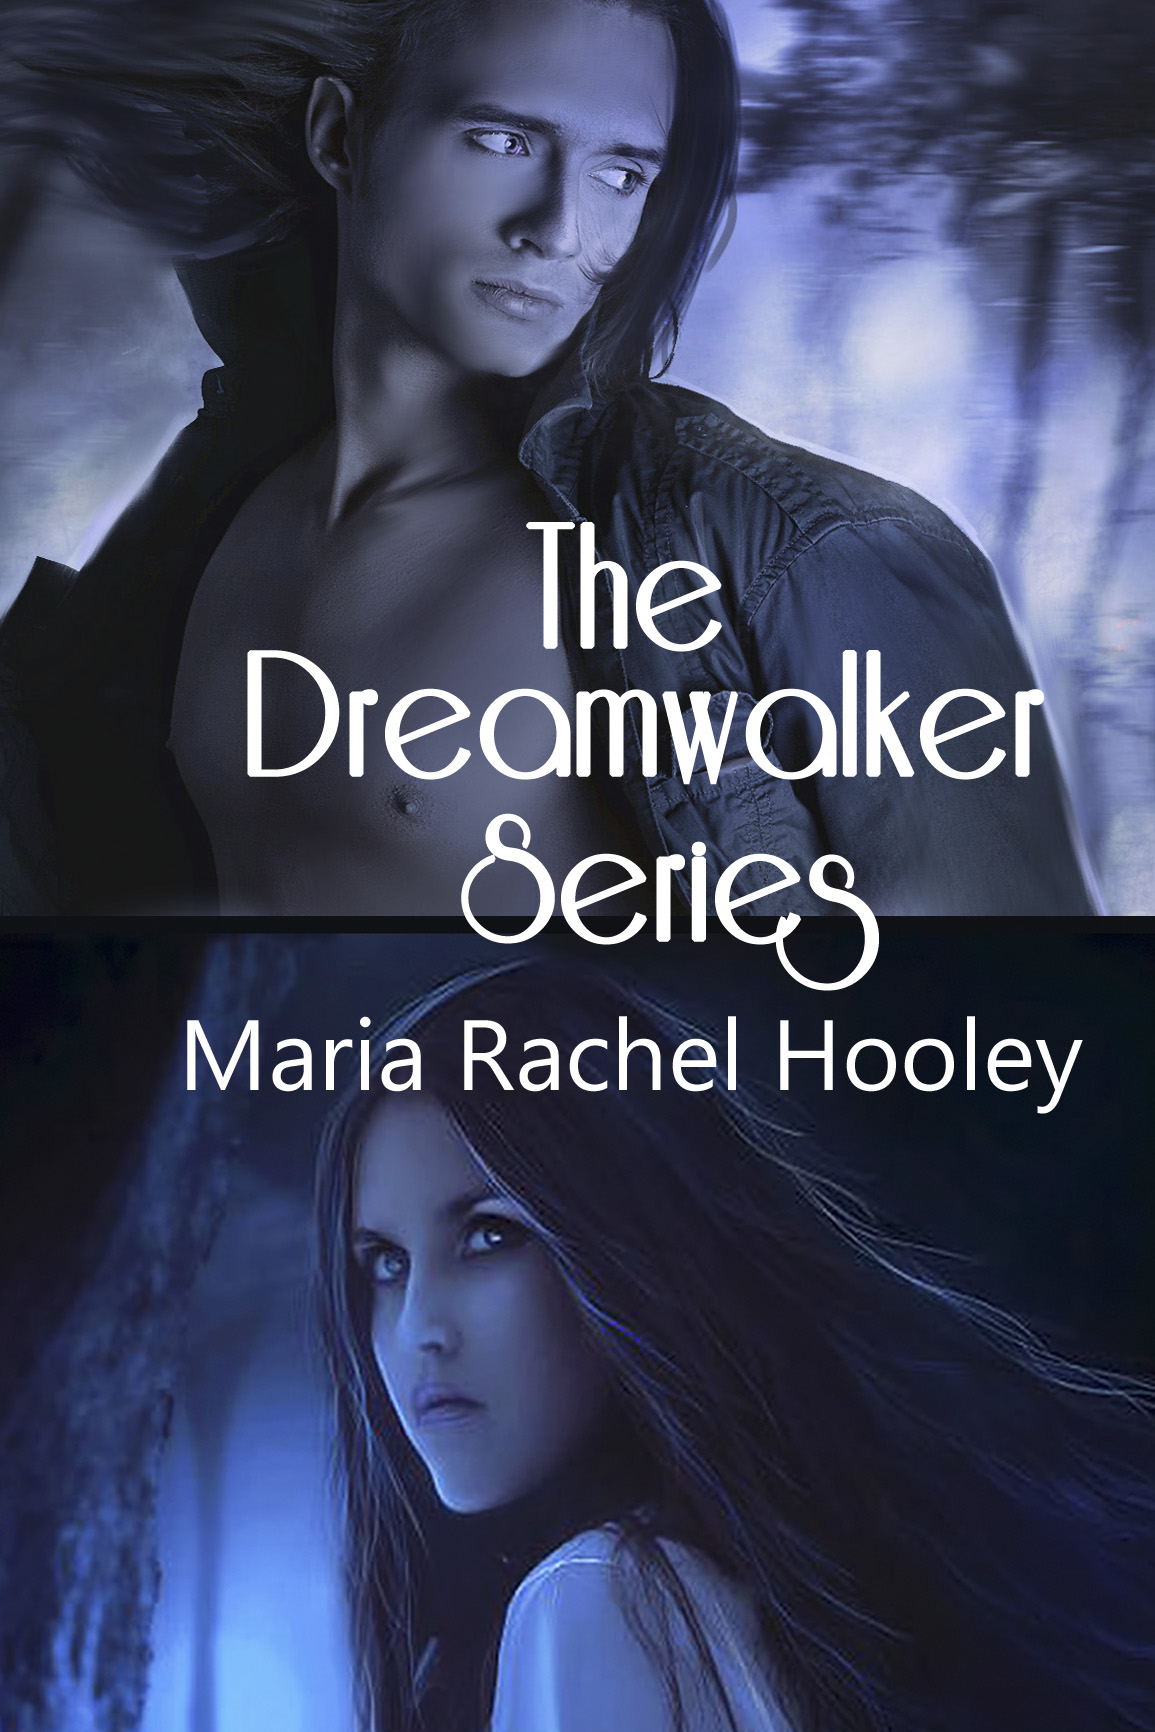 The Dreamwalker Series